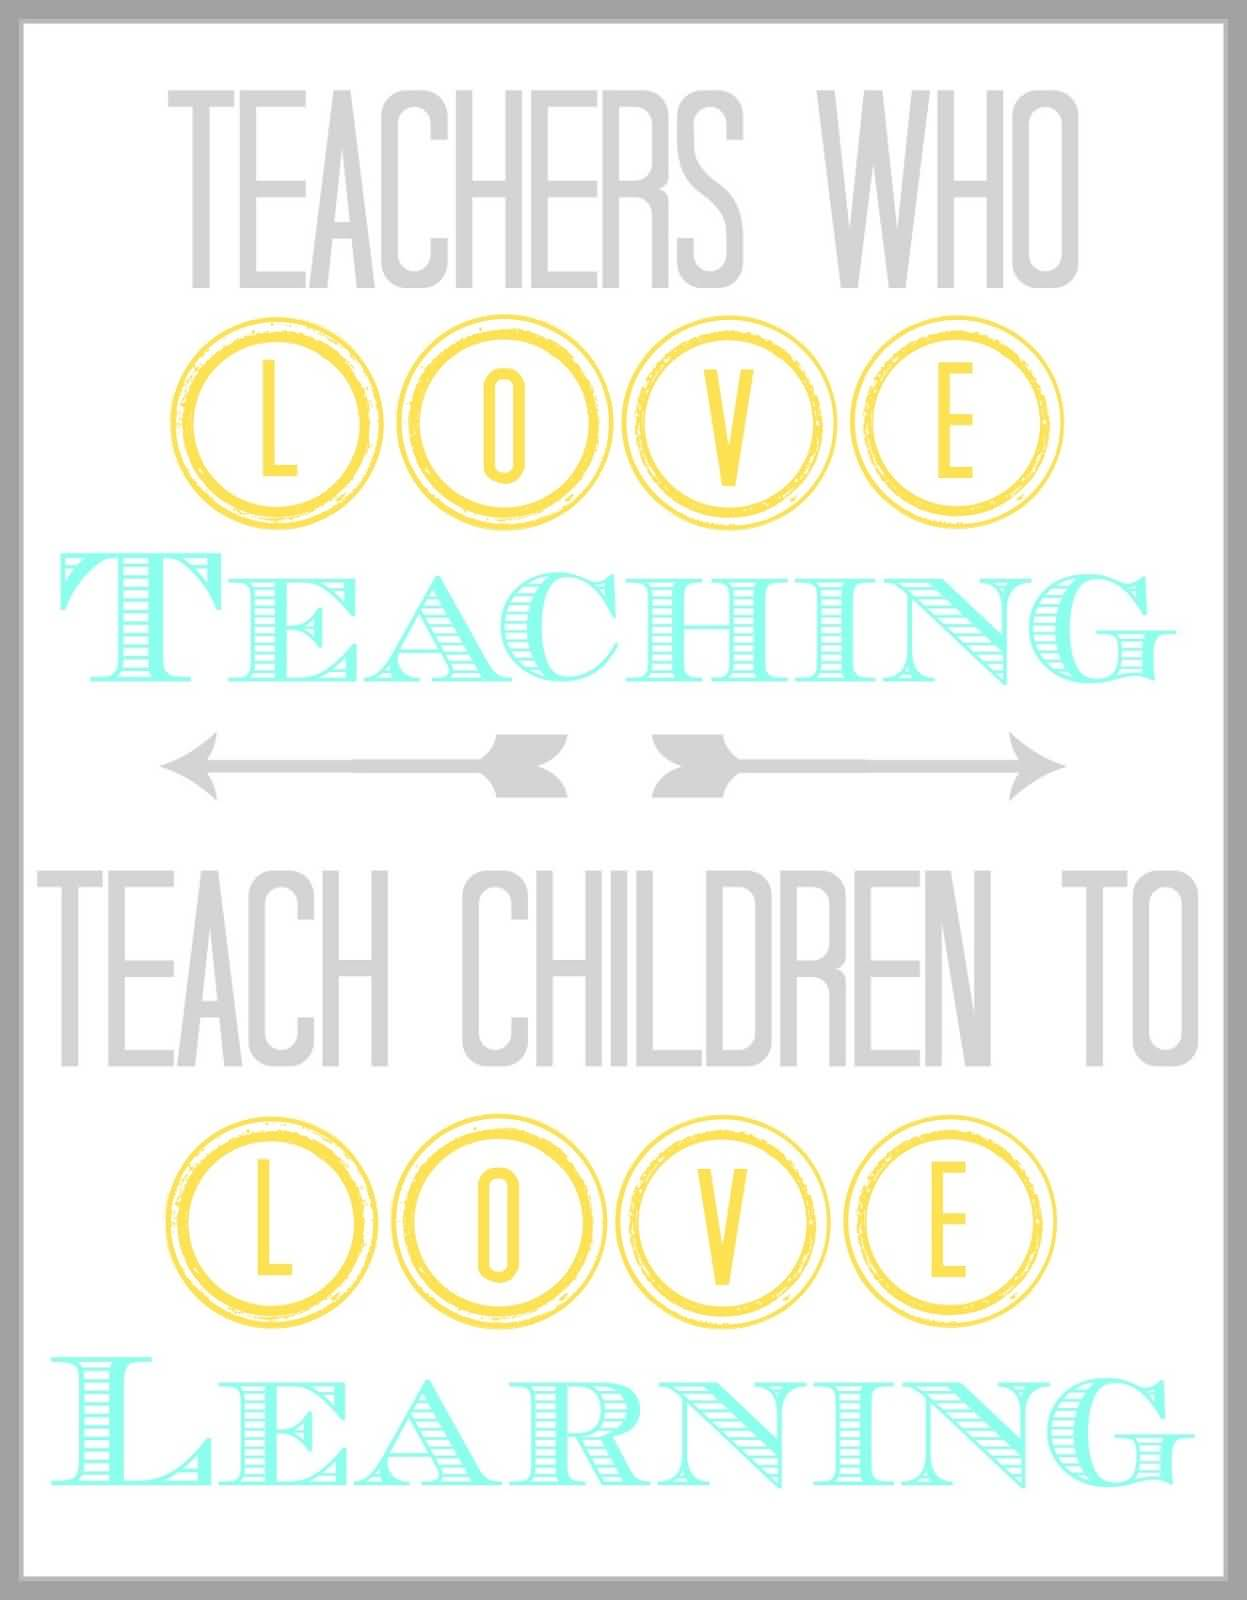 Quotes About Teaching Children Teach Quotes Teachers Who Teaching Teach Children To Learning